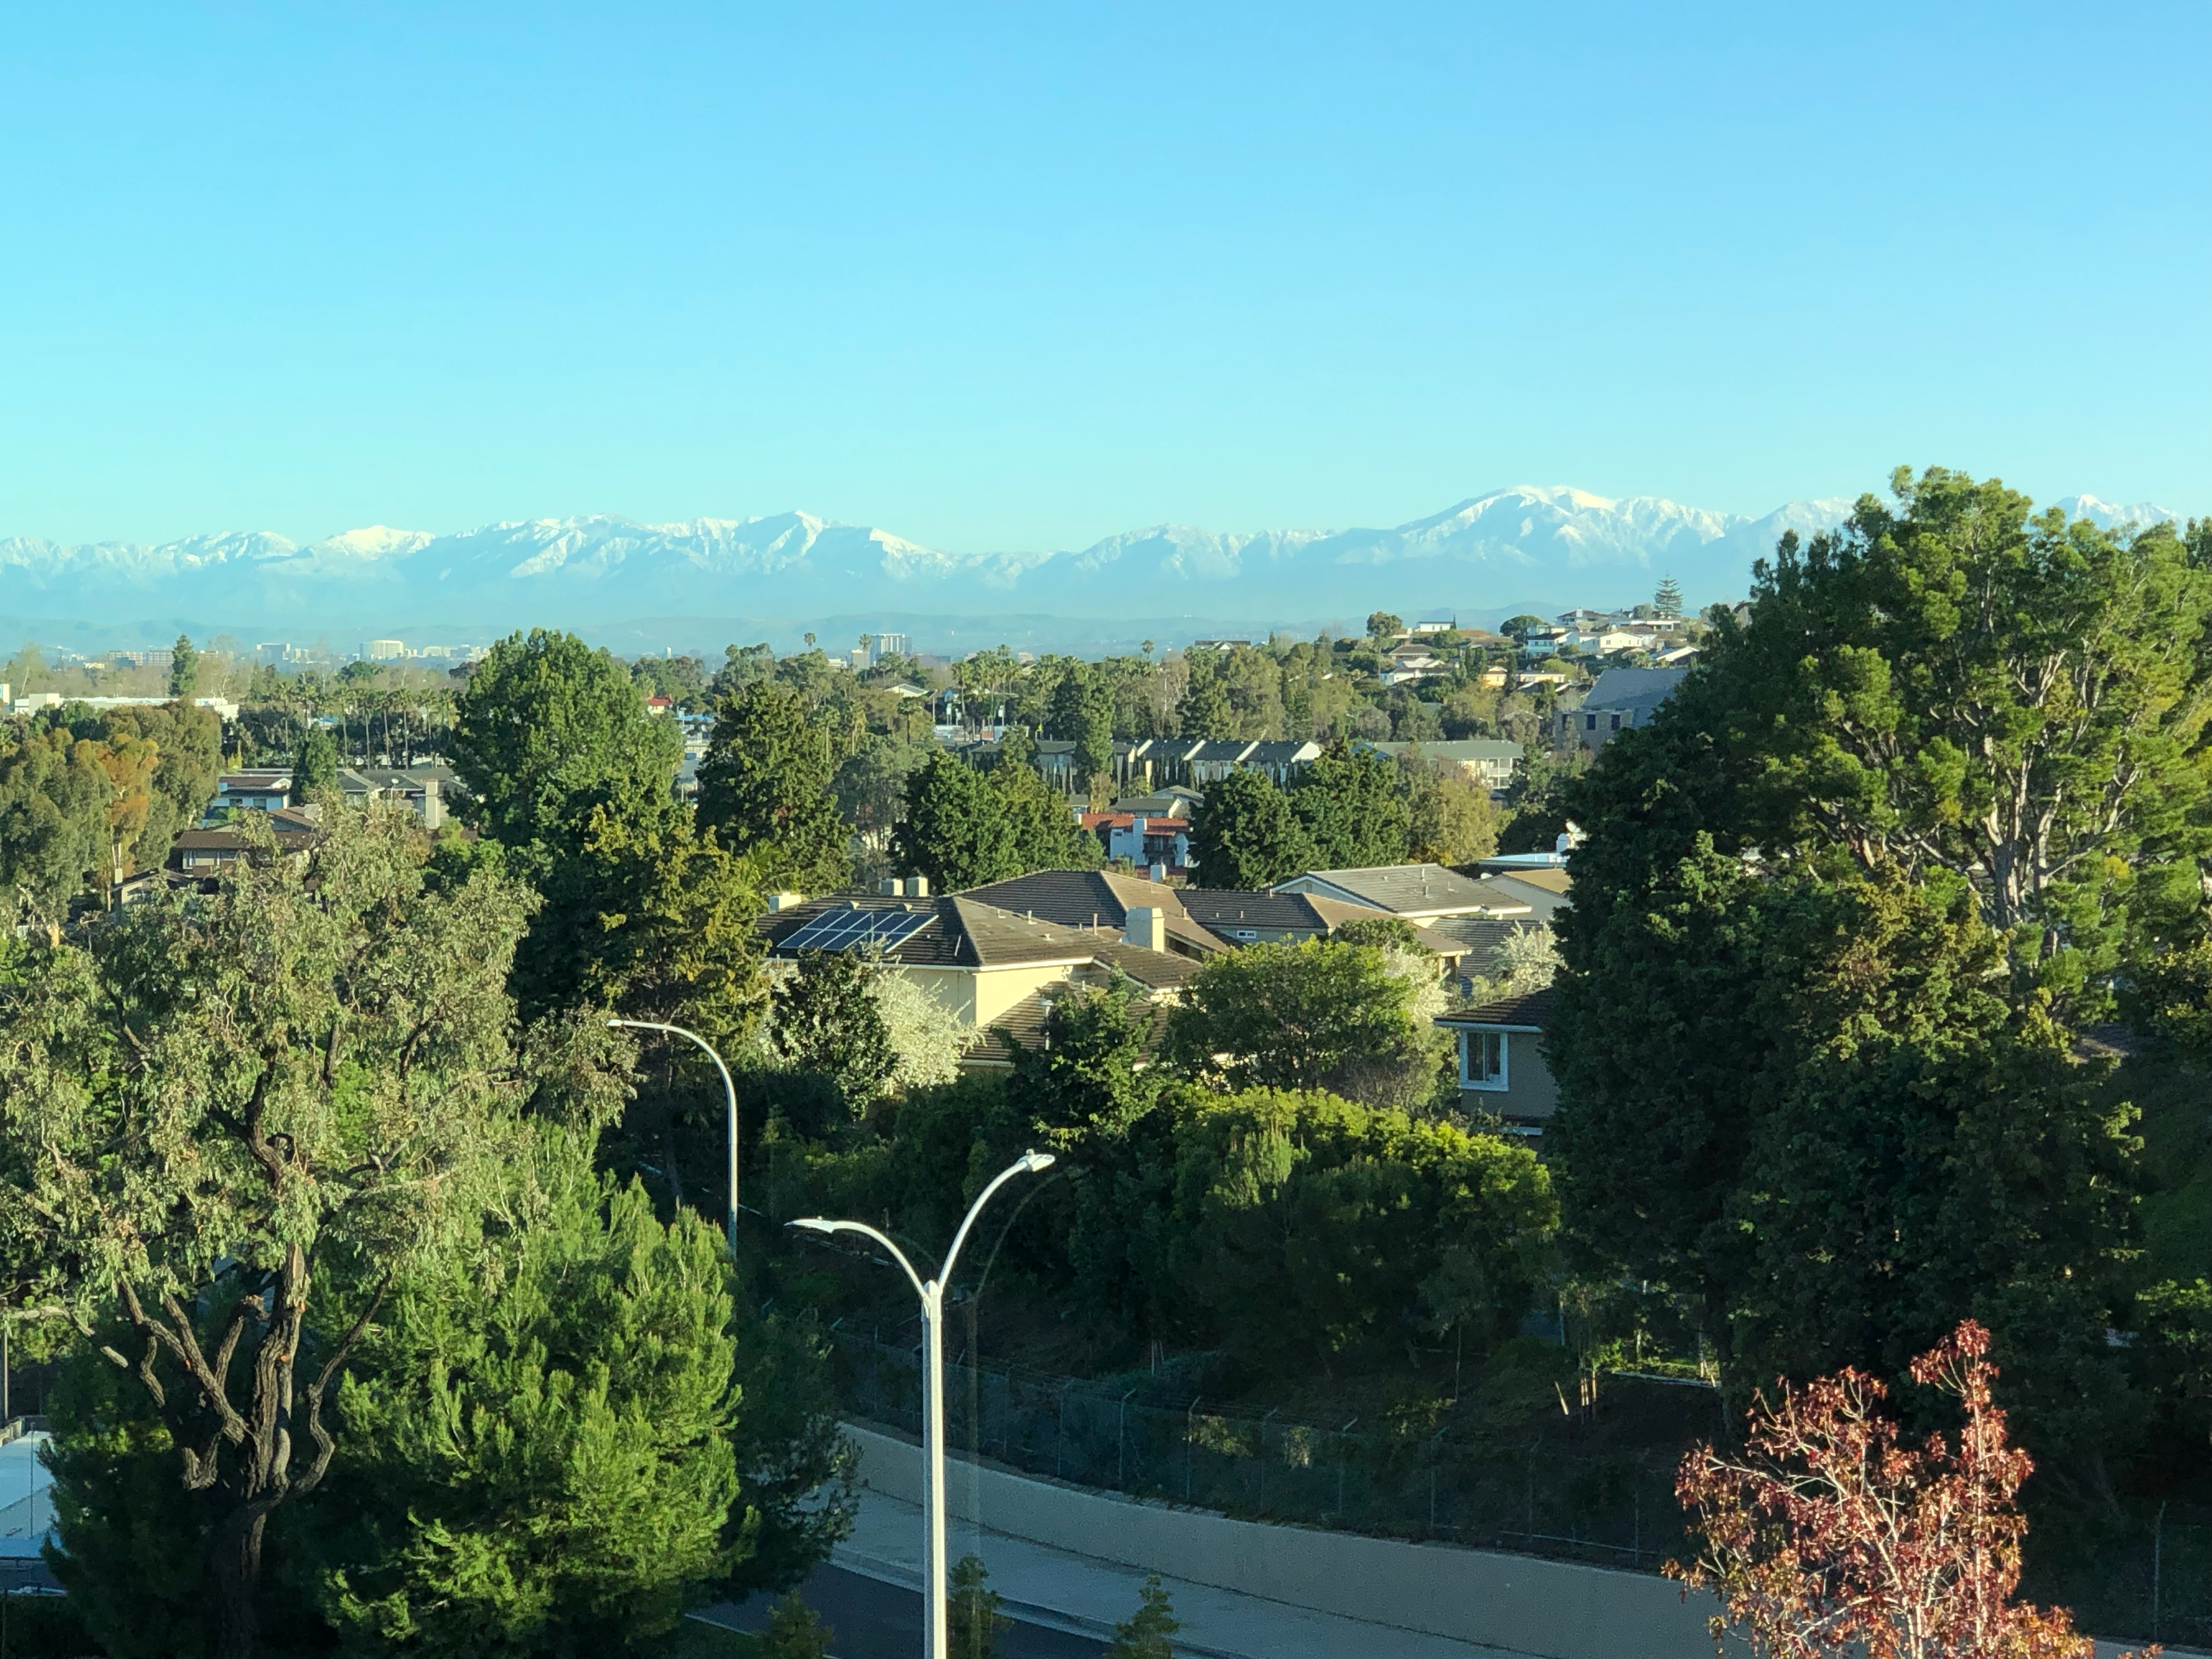 Snow on the Mountains in the Distance from Newport Beach